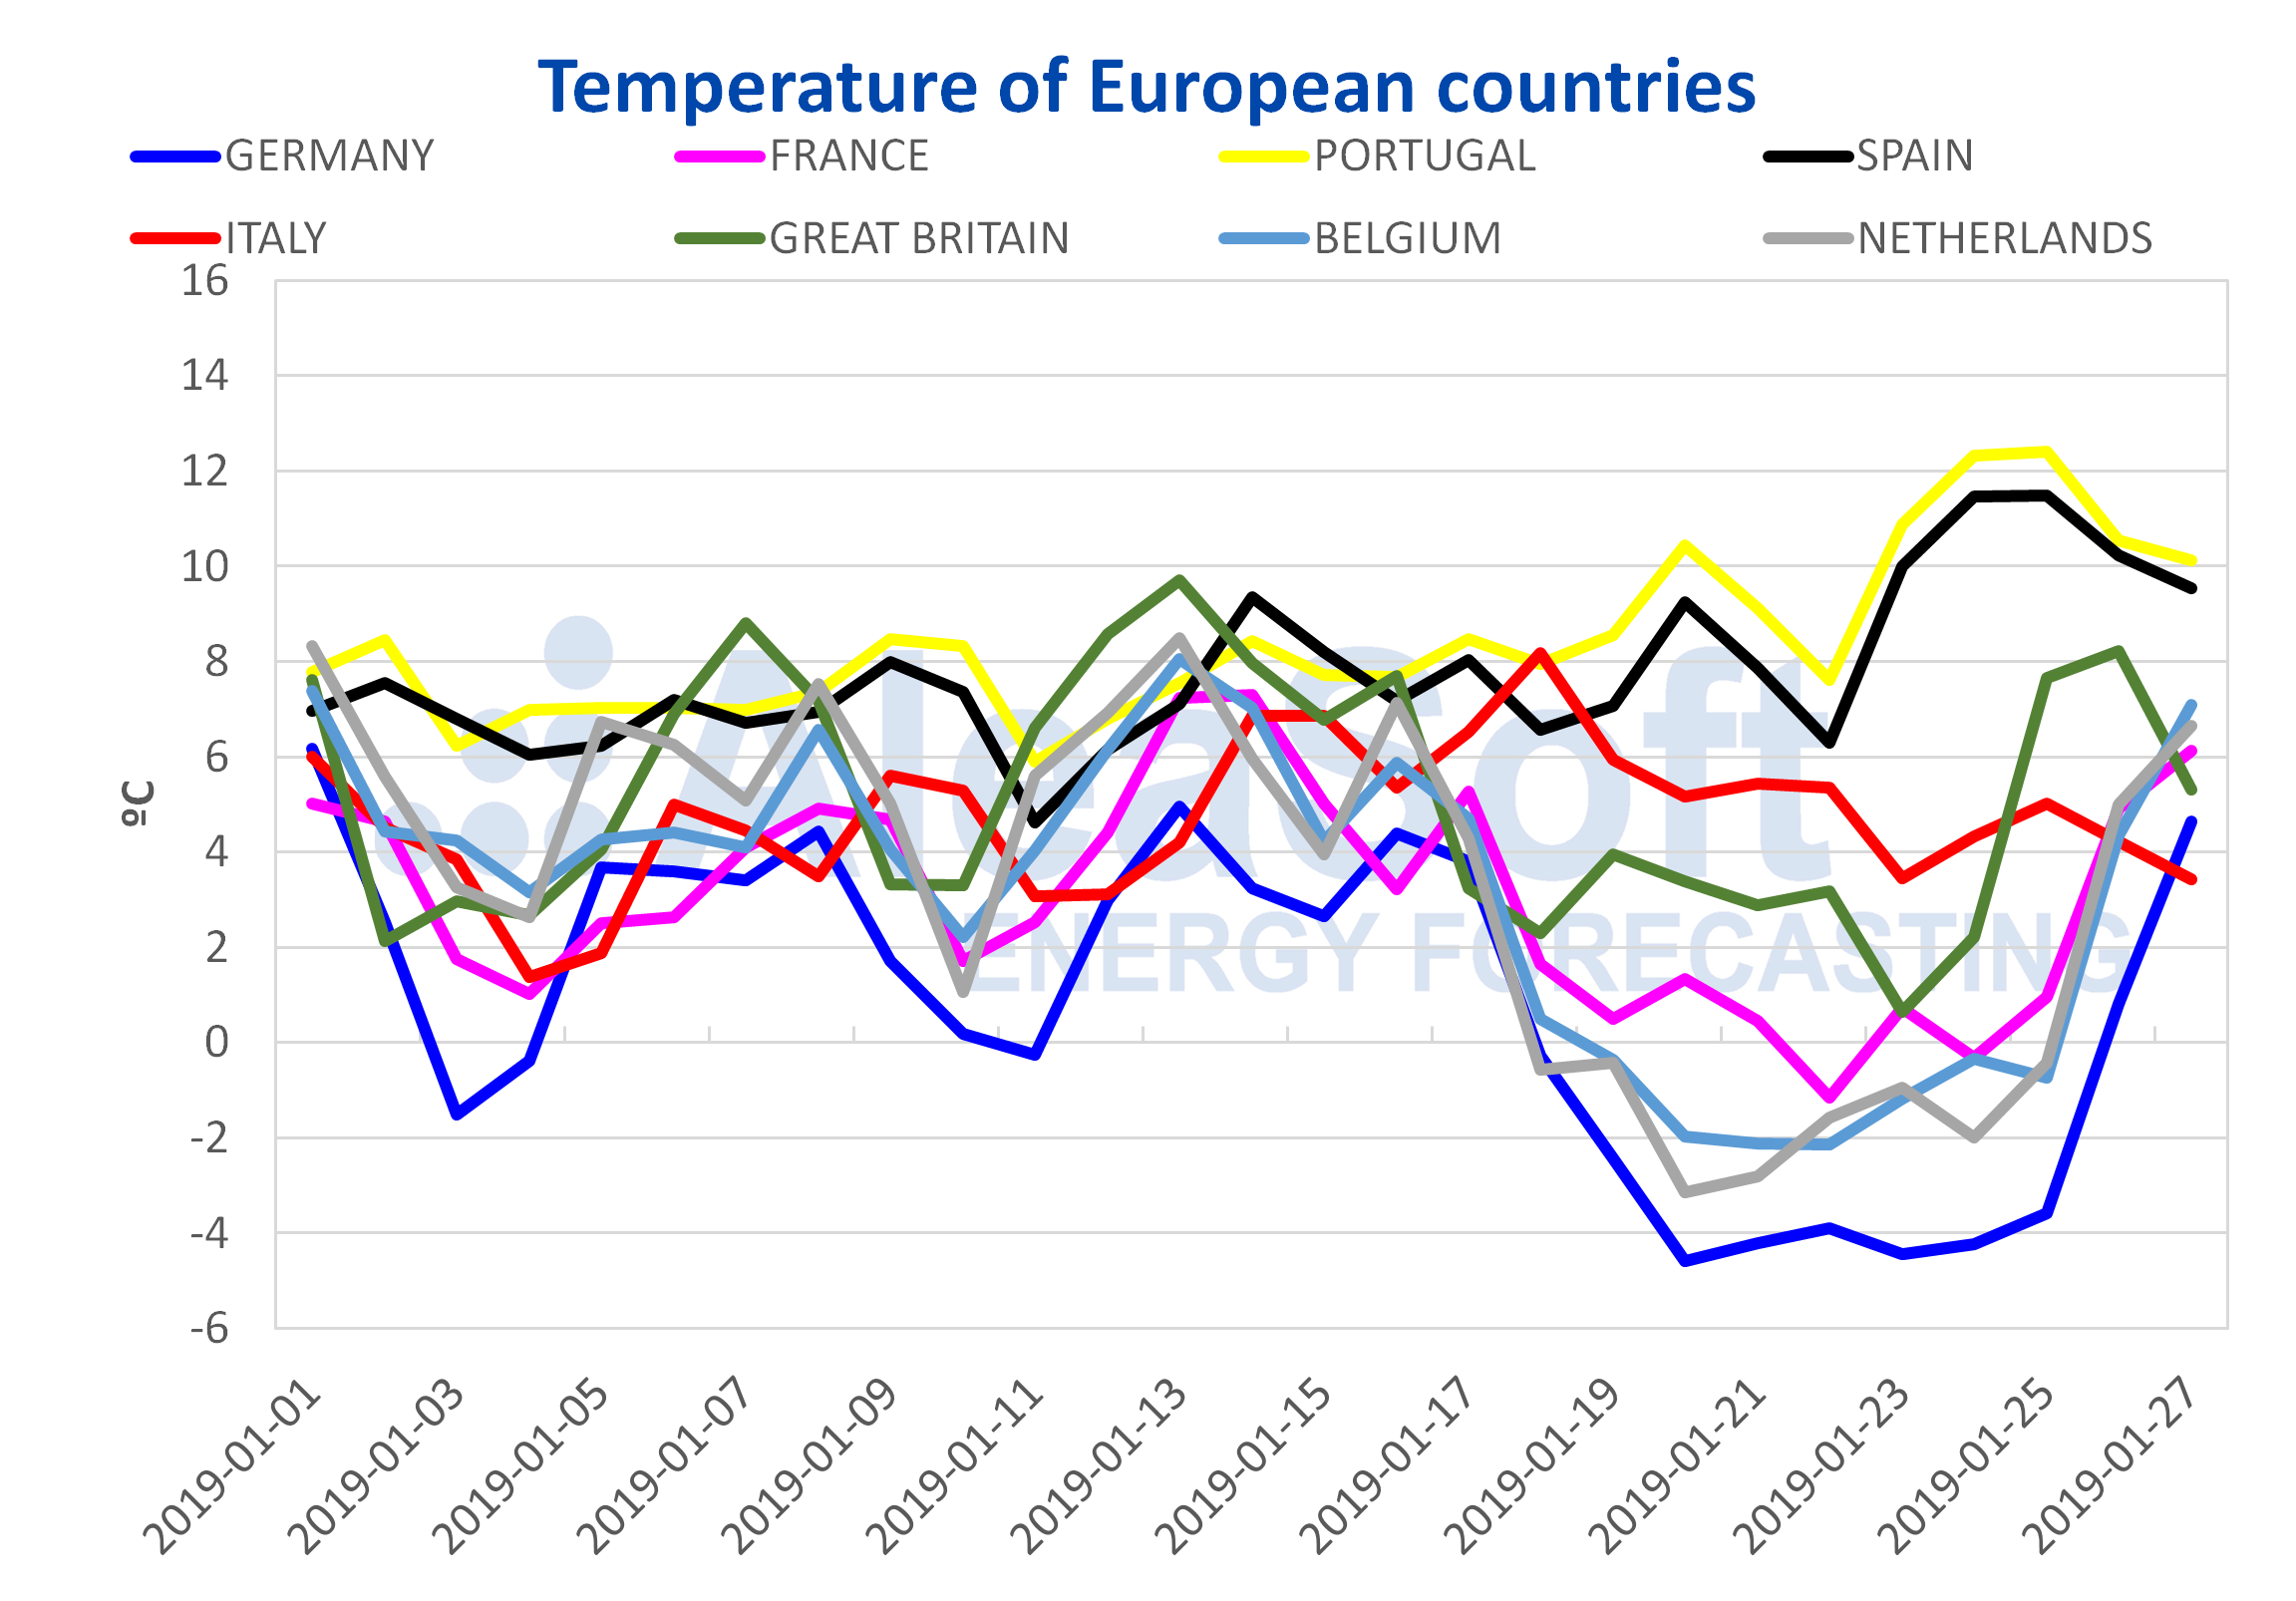 AleaSoft - European countries temperature